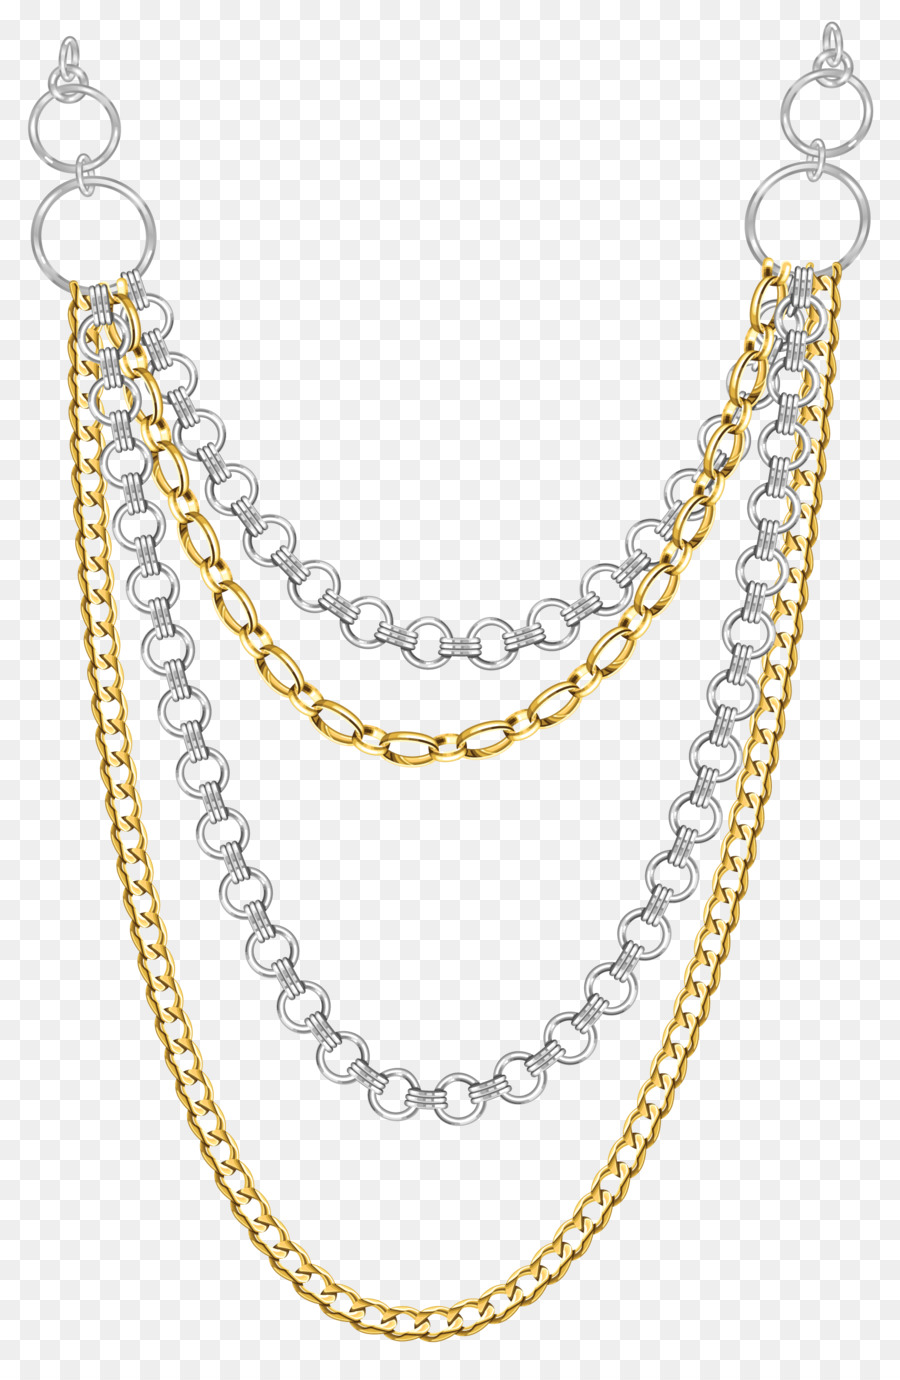 temple buy jewellery for womens neckace necklace collections plated img online set sukkhi women necklaces resplendent sale gold sets